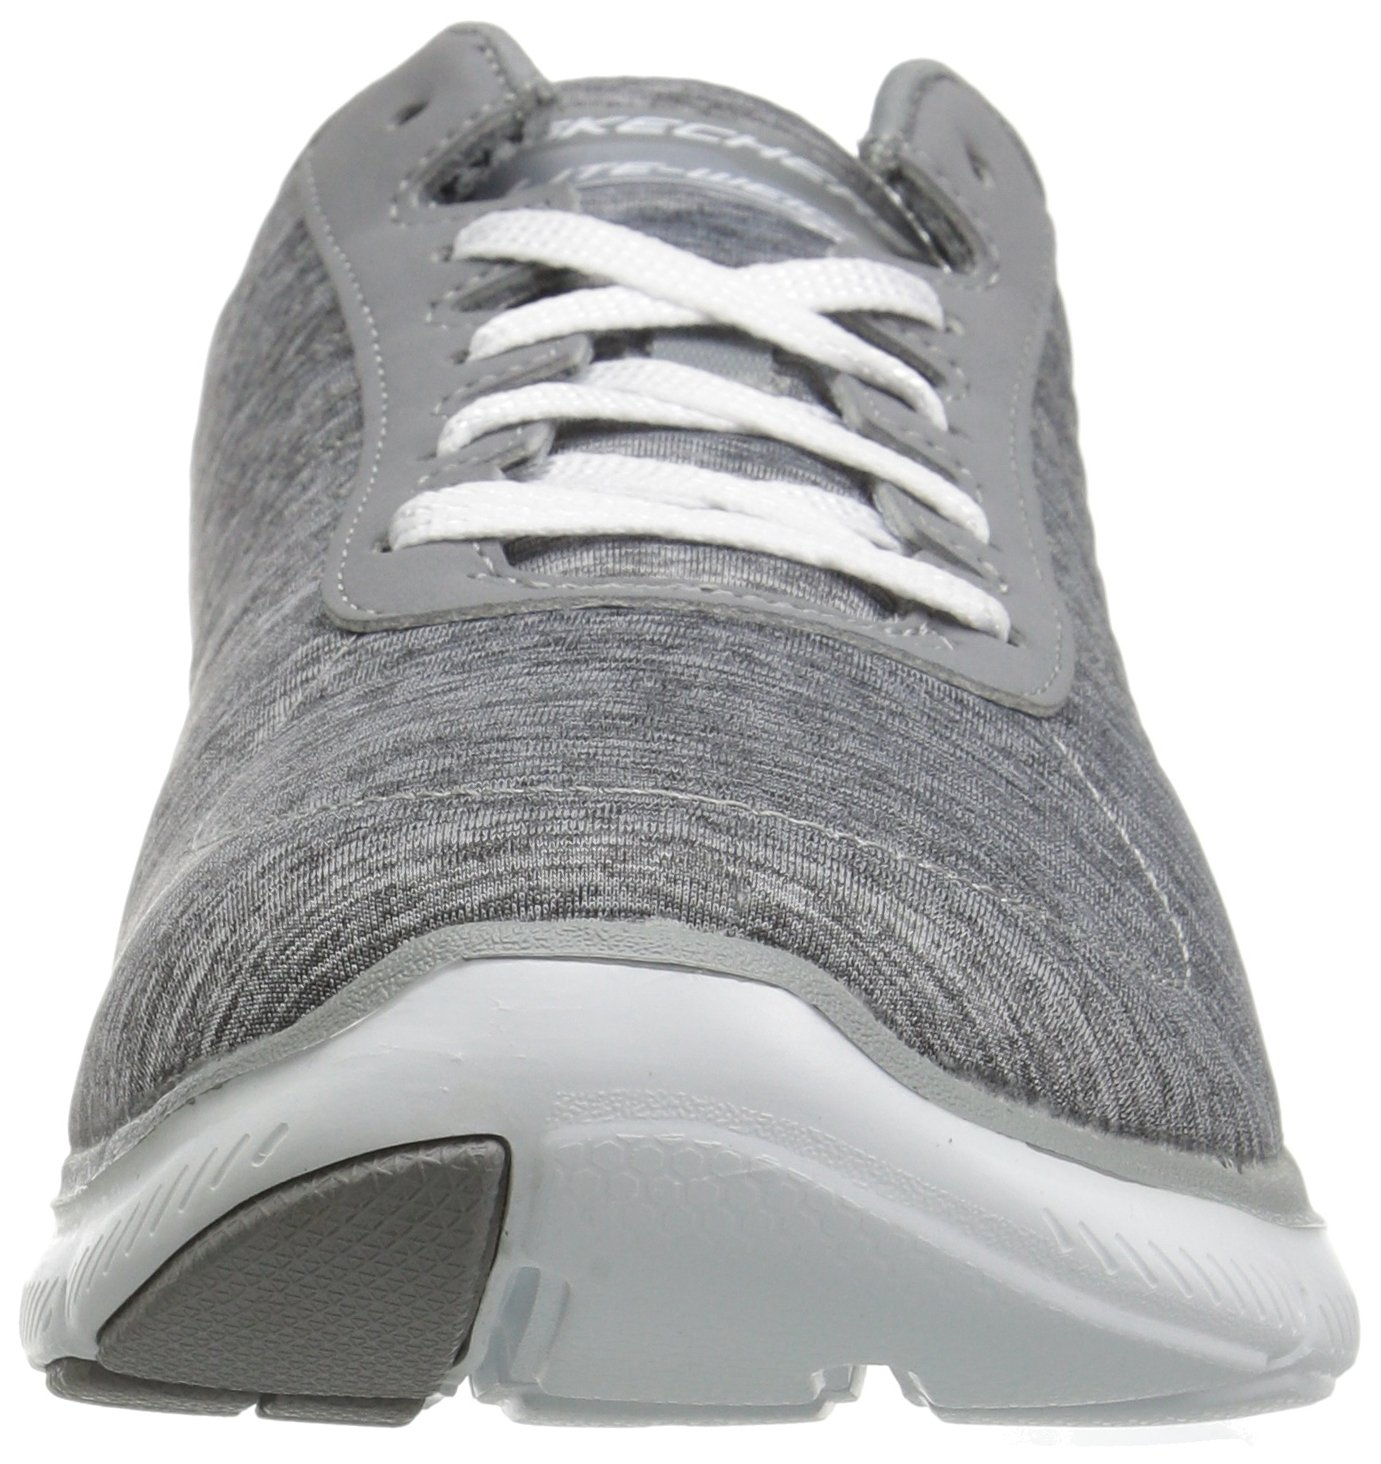 Skechers Women's Flex 5 Appeal 2.0 Sneaker B01MYBCX4X 5 Flex B(M) US|Gray-37 010359